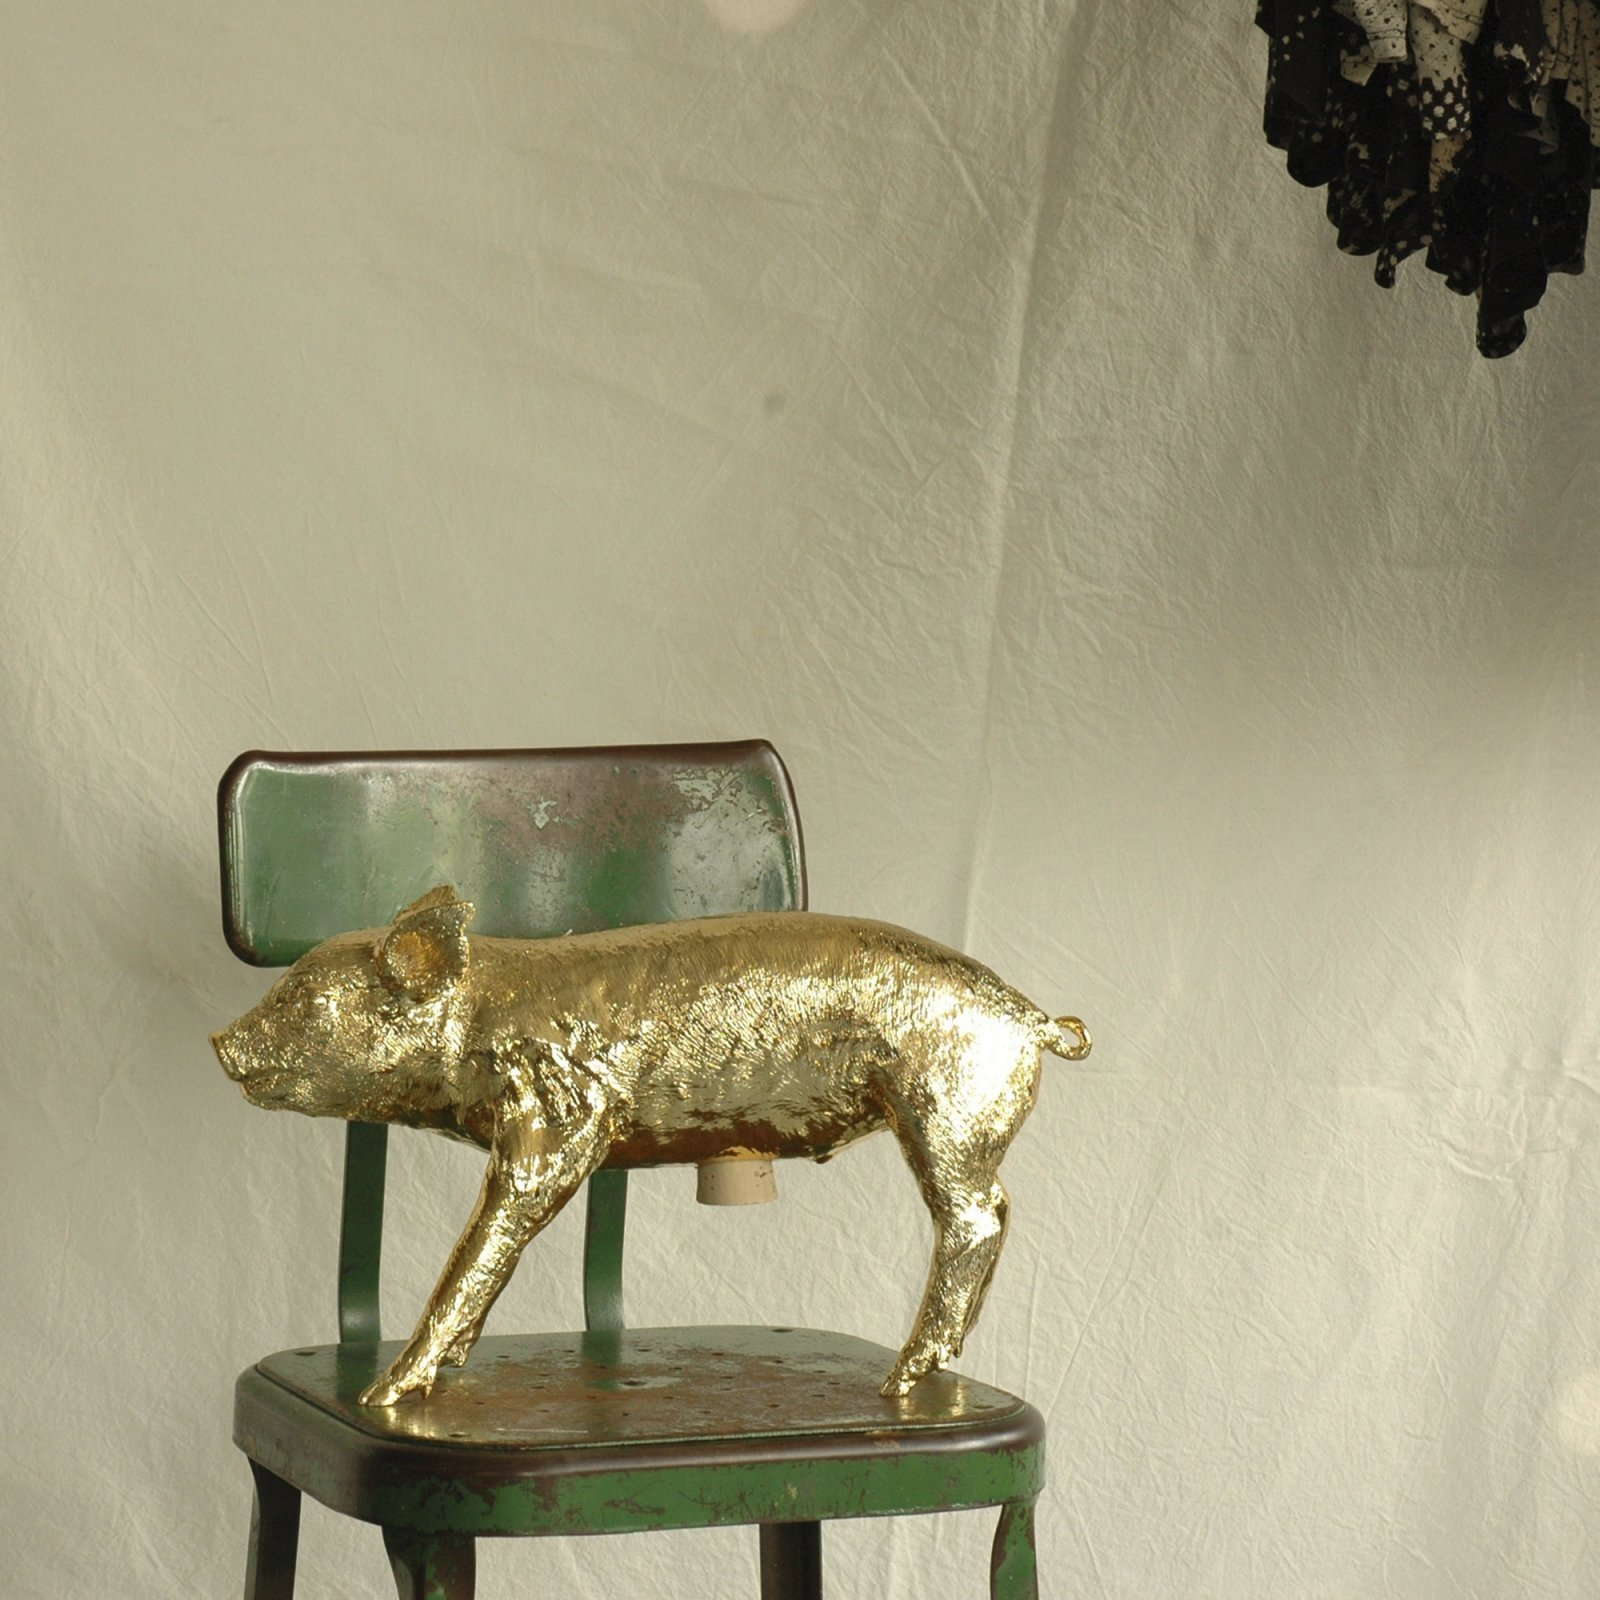 reality-bank-in-the-form-of-a-pig-gold-chrome-3